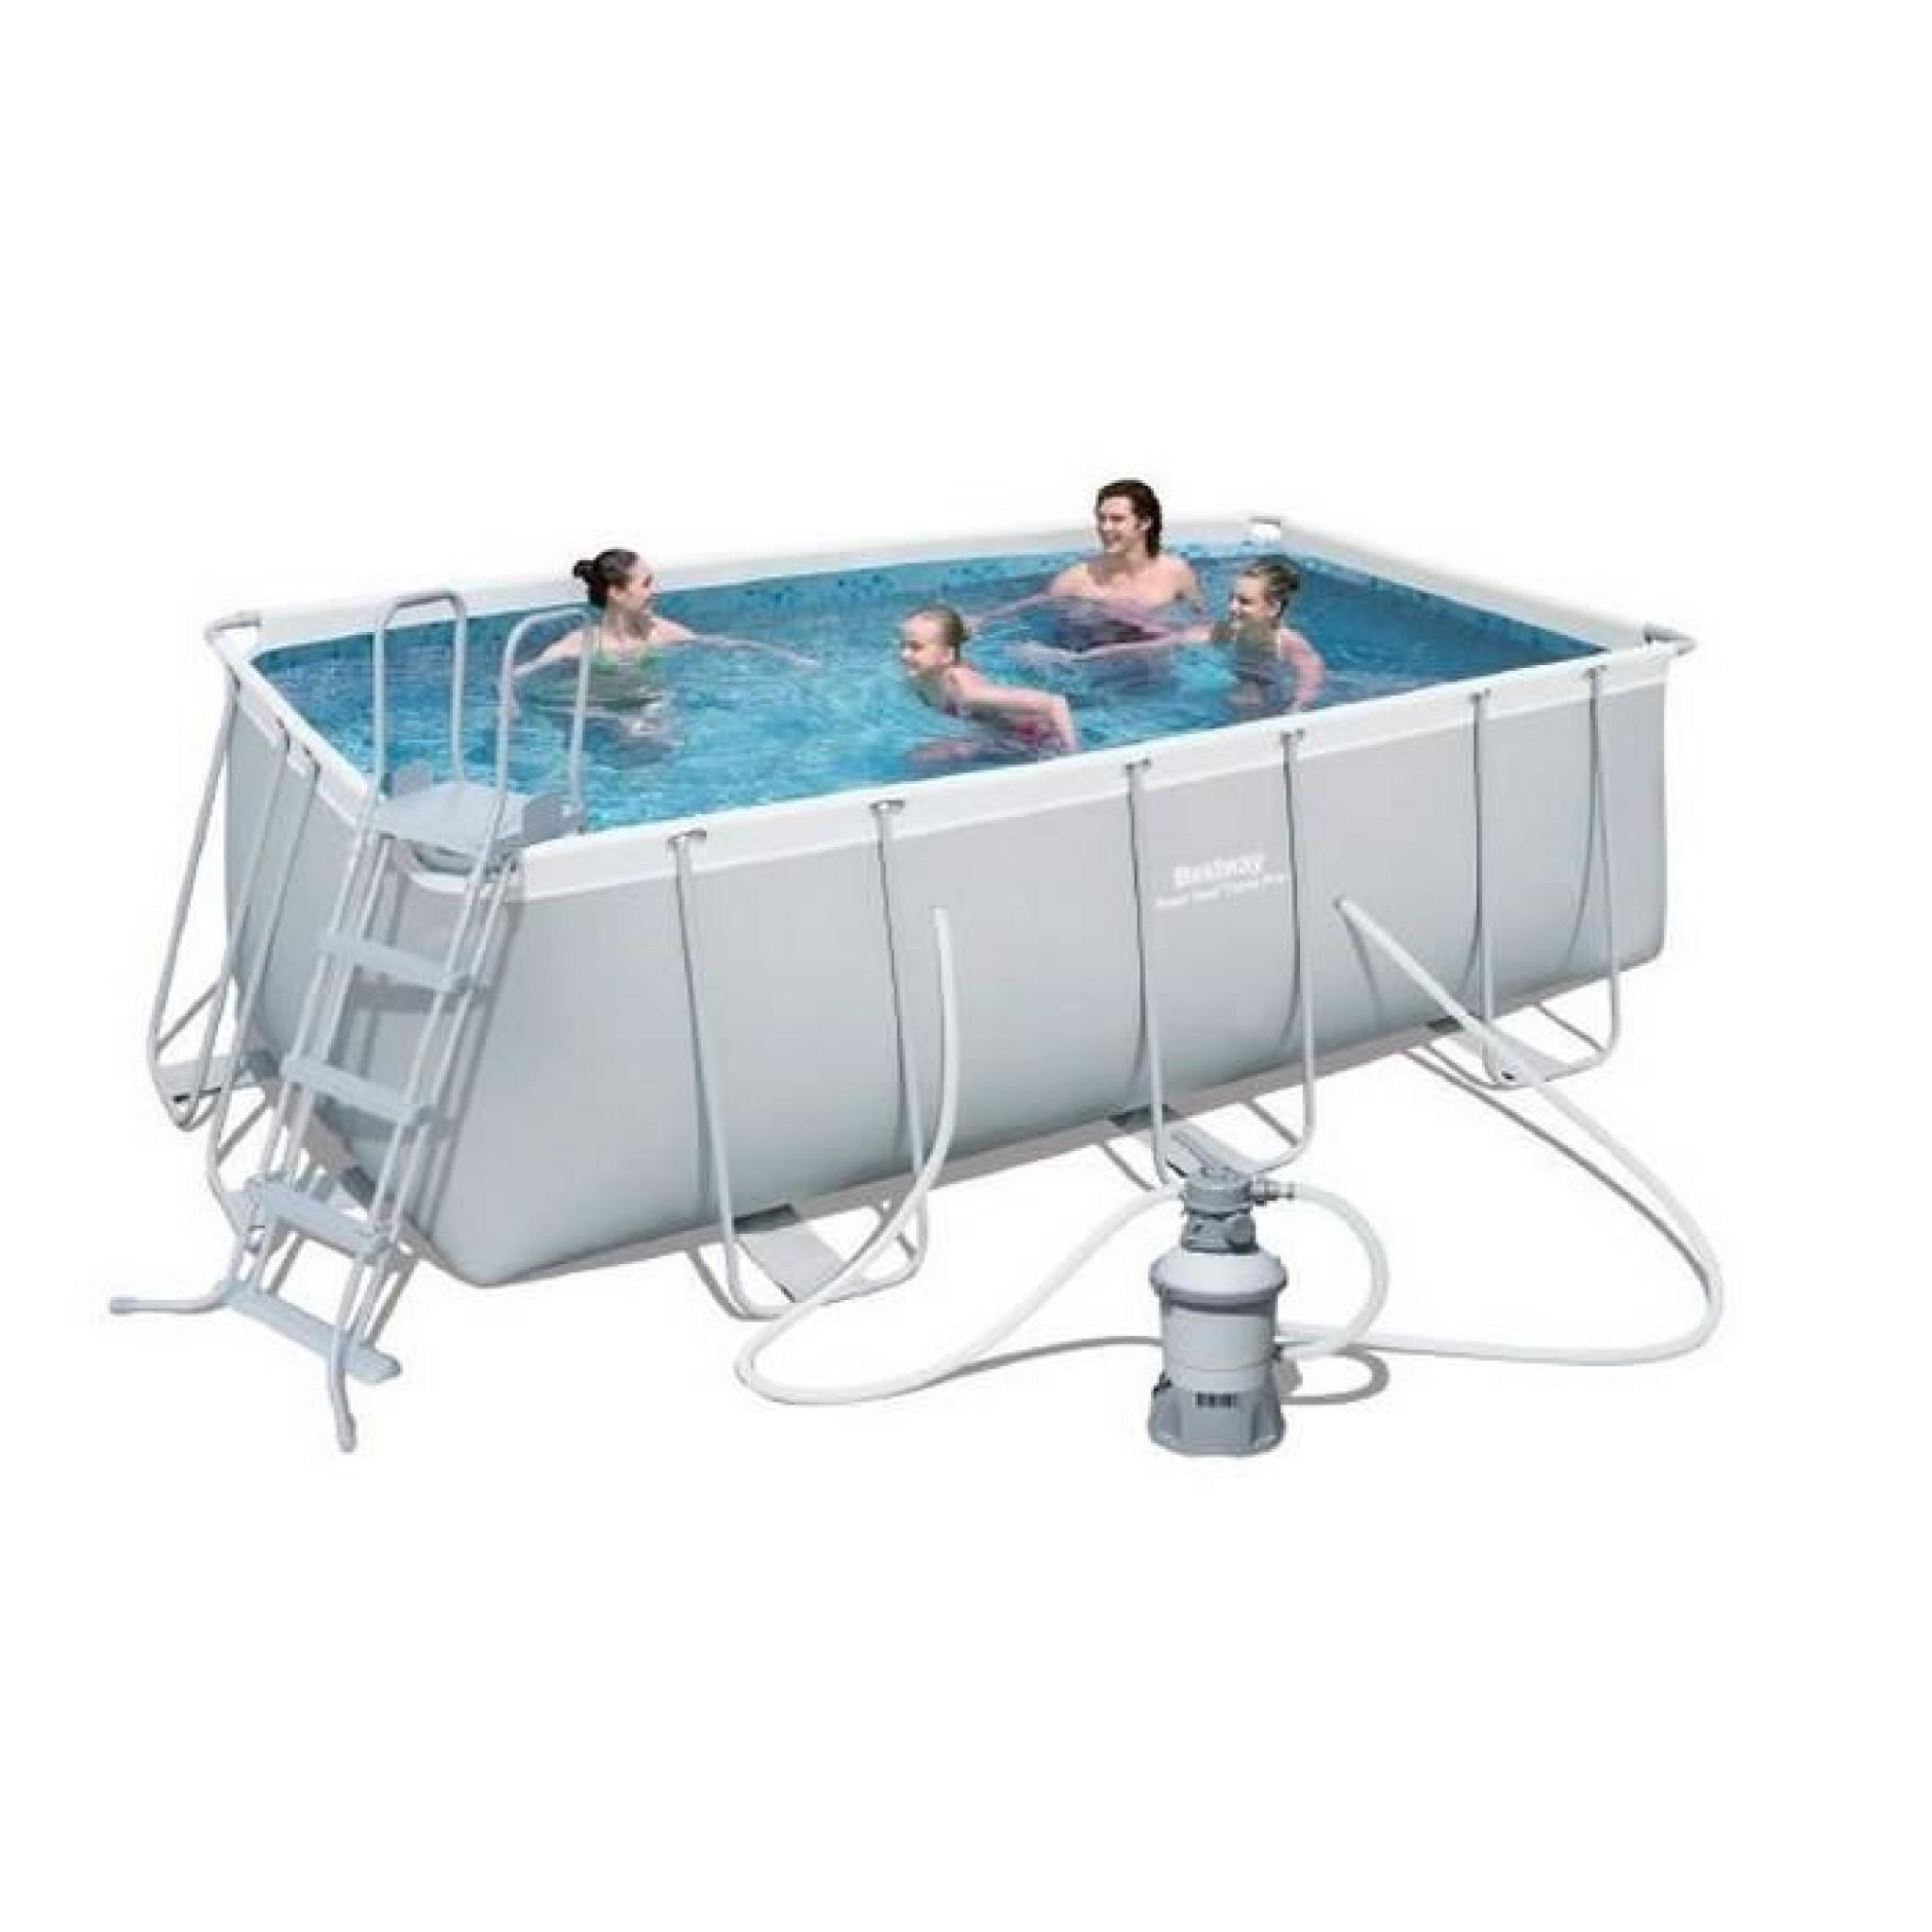 Bestway piscine tubulaire rectangulaire for Echelle piscine tubulaire